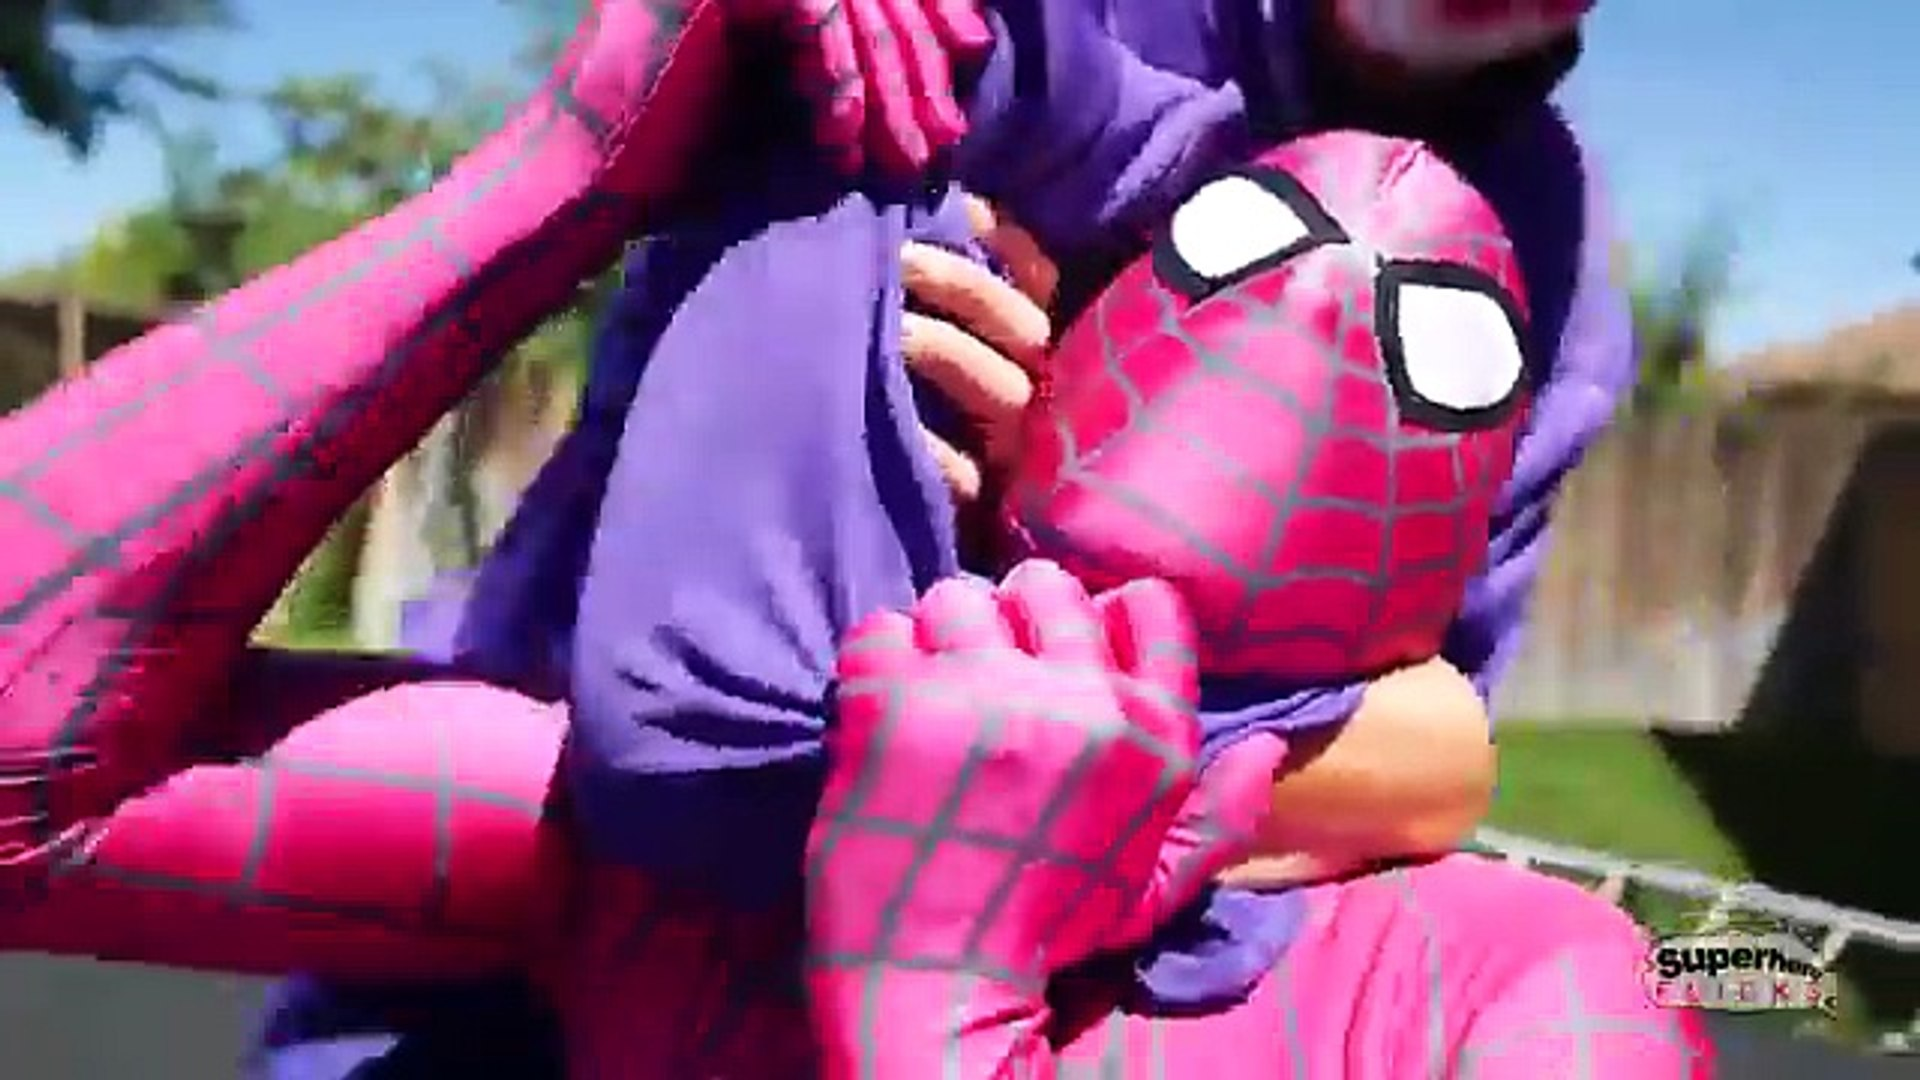 The Amazing Pink Spiderman Vs Crazy Joker Vs Bearded Joker Real Life Superhero Movie Vidéo Dailymotion